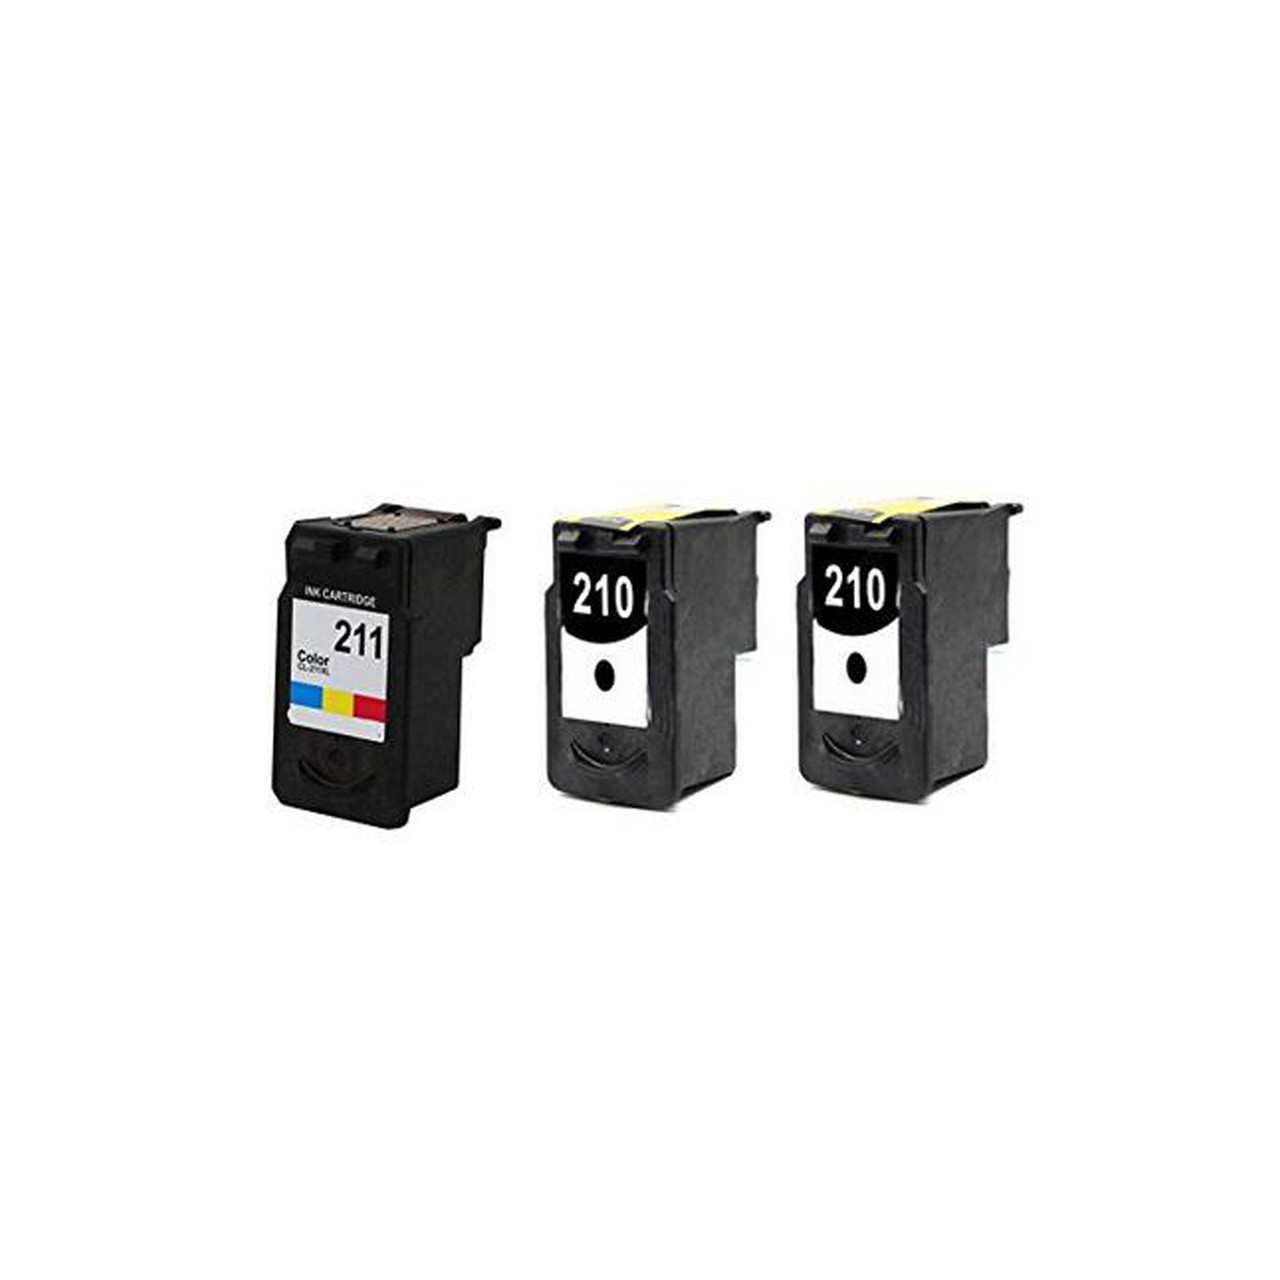 Generic Remanufactured CANON 2 Black 1 Color PG-210 CL-211 High Capacity  Printer Ink Cartridge for Canon Printers PIXMA iP2702 -3PK